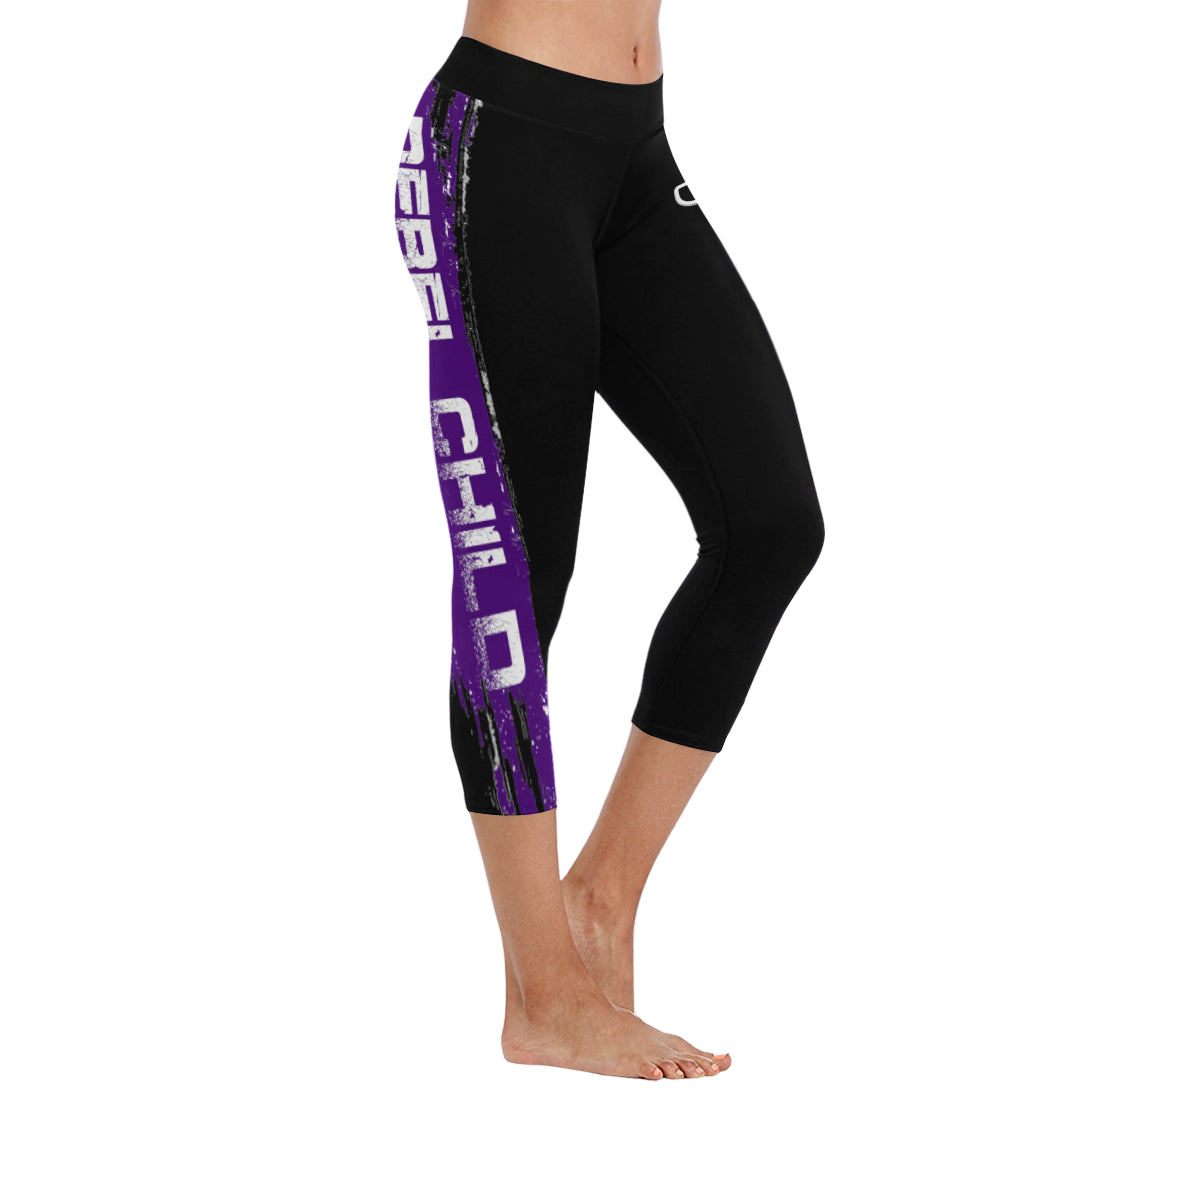 Purple krewe Low Rise Capri Leggings (Invisible Stitch) (Model L08).